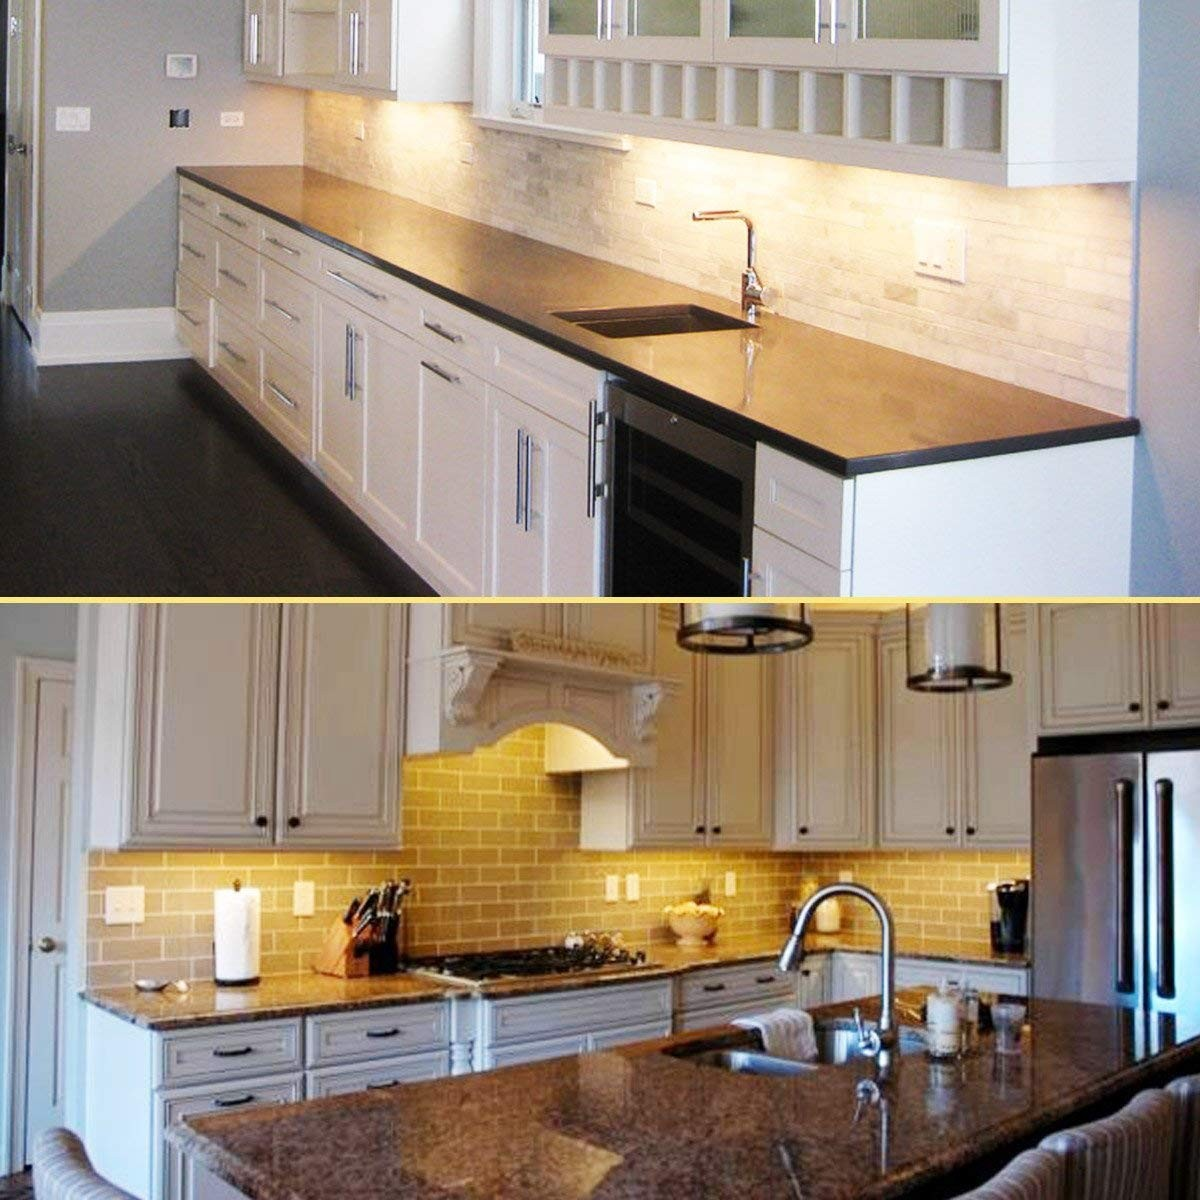 Kitchen Lighting Under Cabinet Led: Ultra Thin LED Under Cabinet/Counter Kitchen Lighting Kit